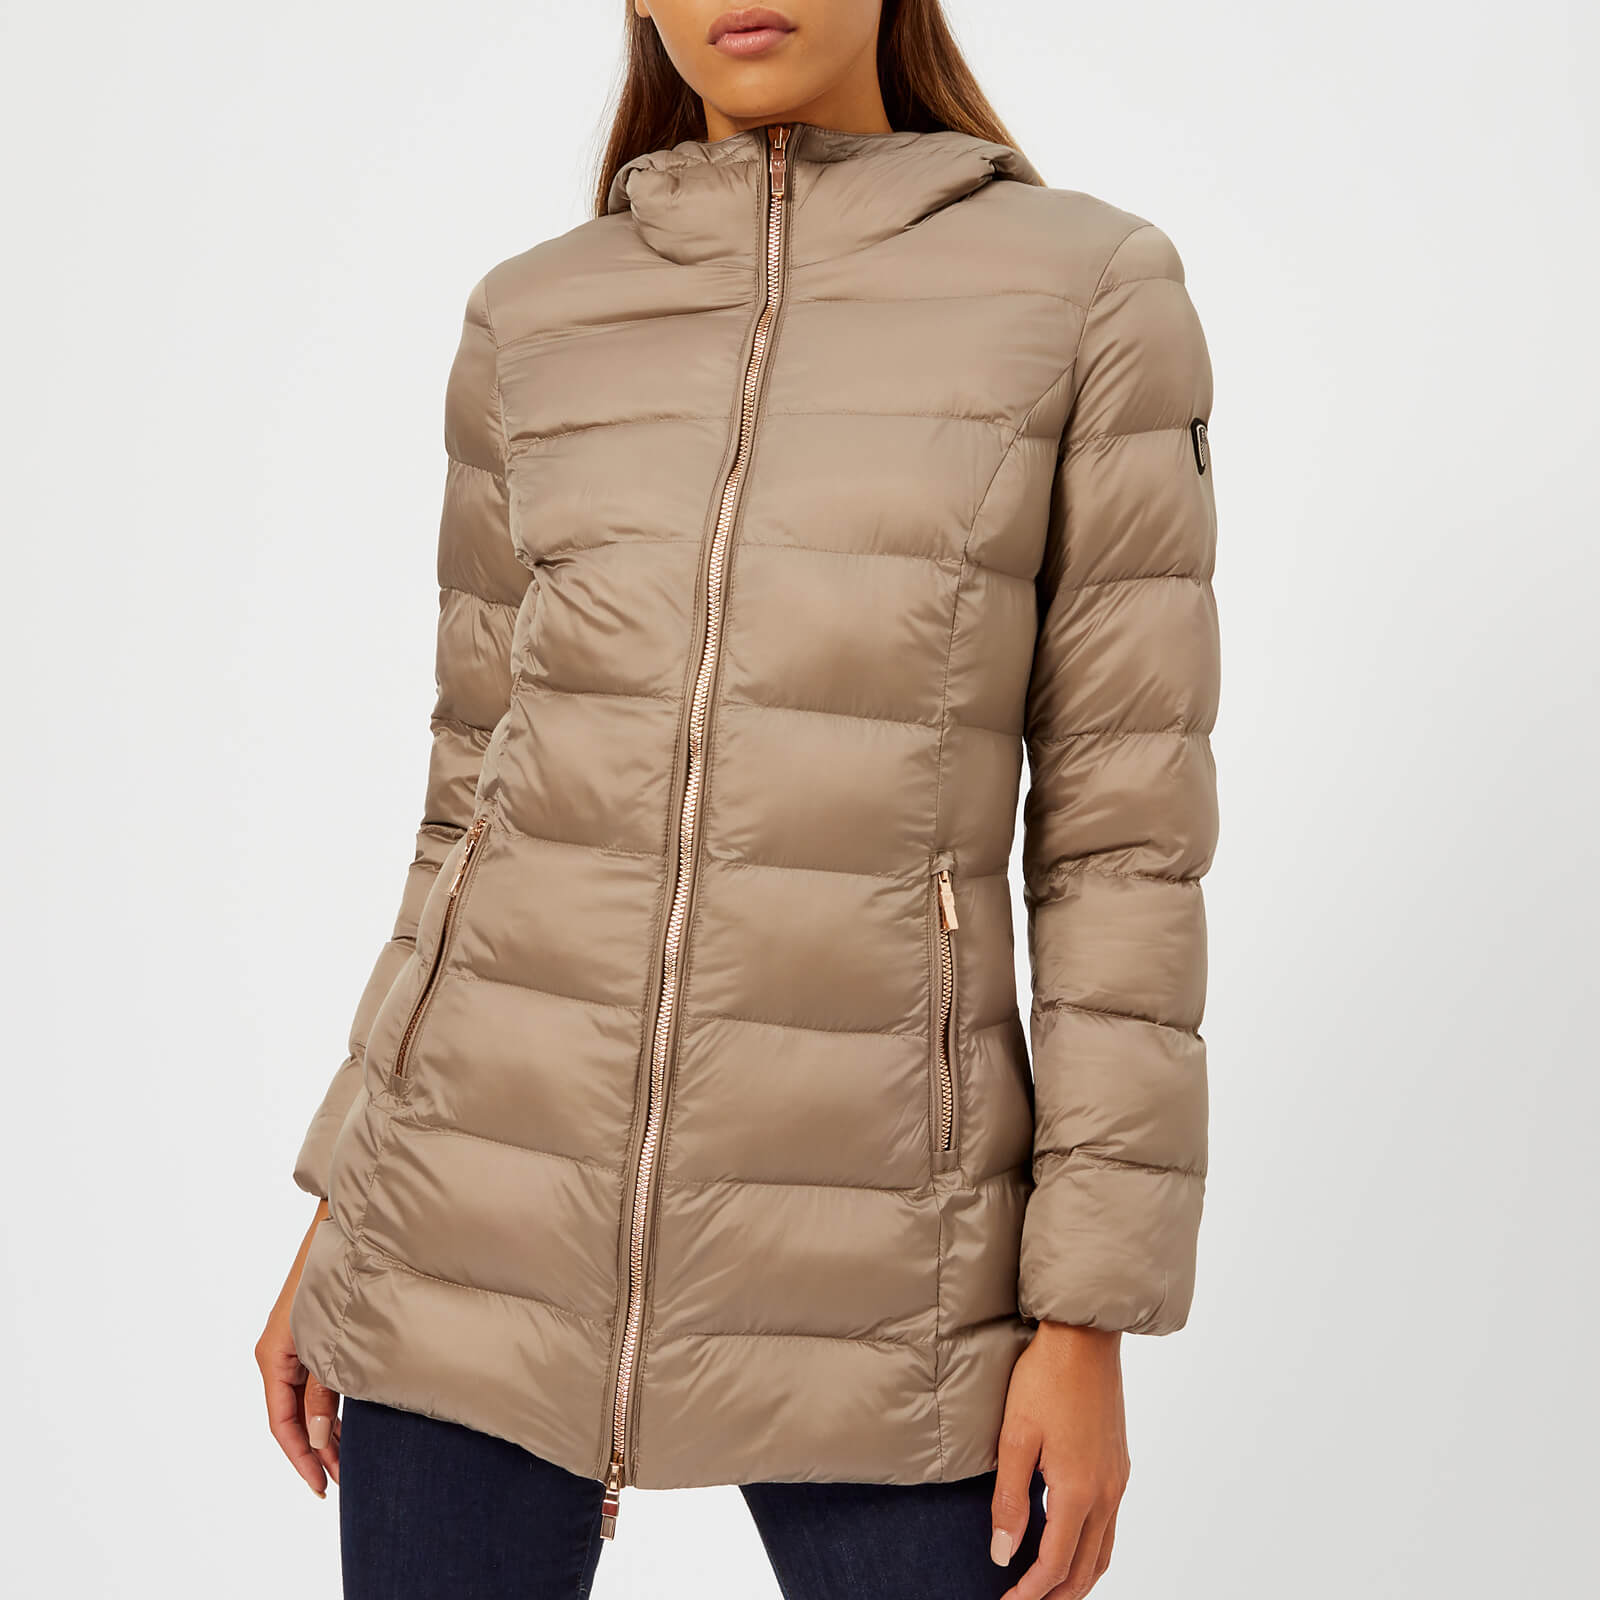 4738409810 Emporio Armani EA7 Women's Mountain Eco Heavy 3/4 Jacket - Cinder